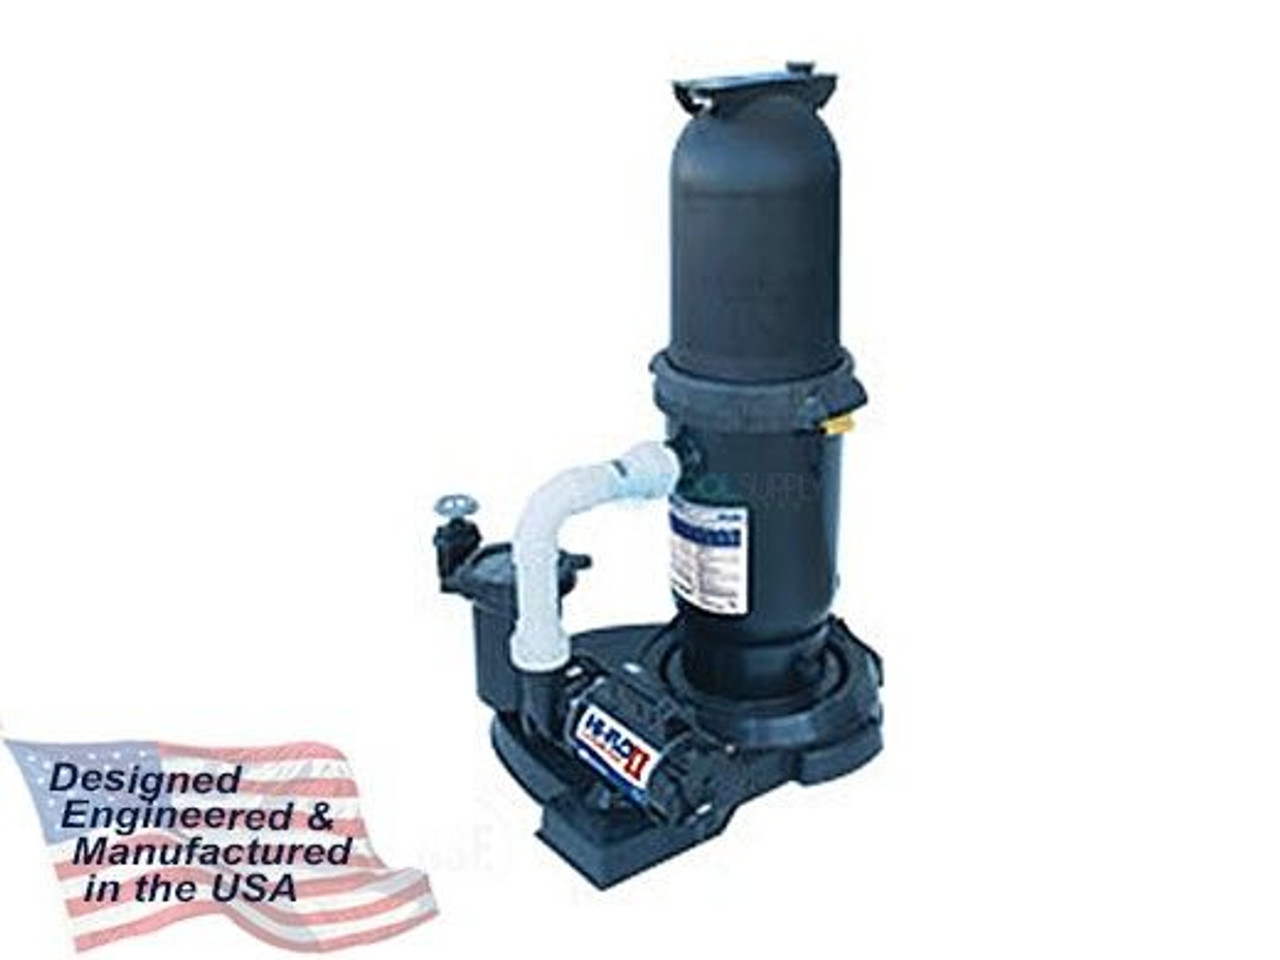 Waterway, ProClean Plus, 125 sq ft,  Cartridge ,1.5HP, 2 SP, Pump, HiFlow,filter, above ground, swimming, pool, System, FREE SHIPPING, 522-6215-6S, RW522-6120-6S